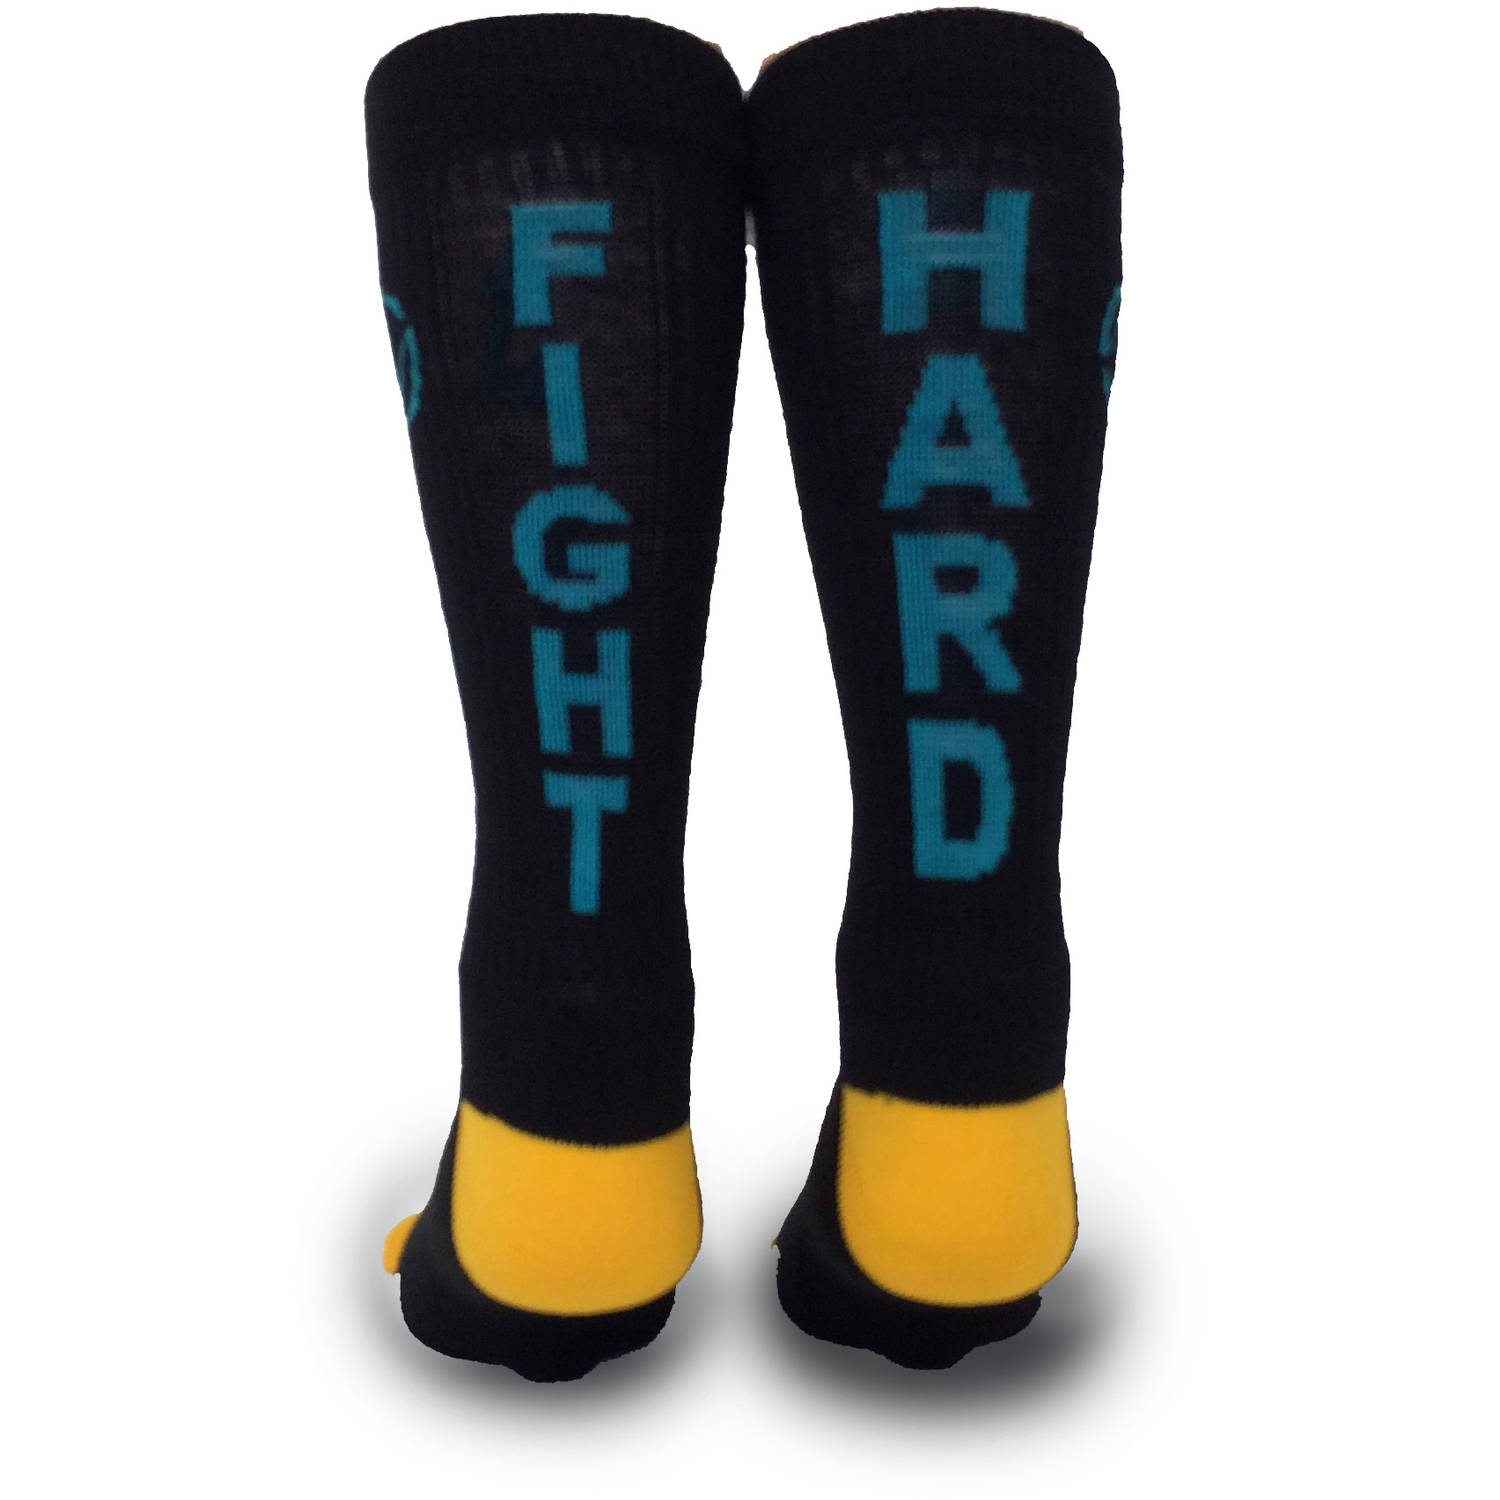 Inspyr Socks Fight Hard Athletic Lifestyle Crew Sock